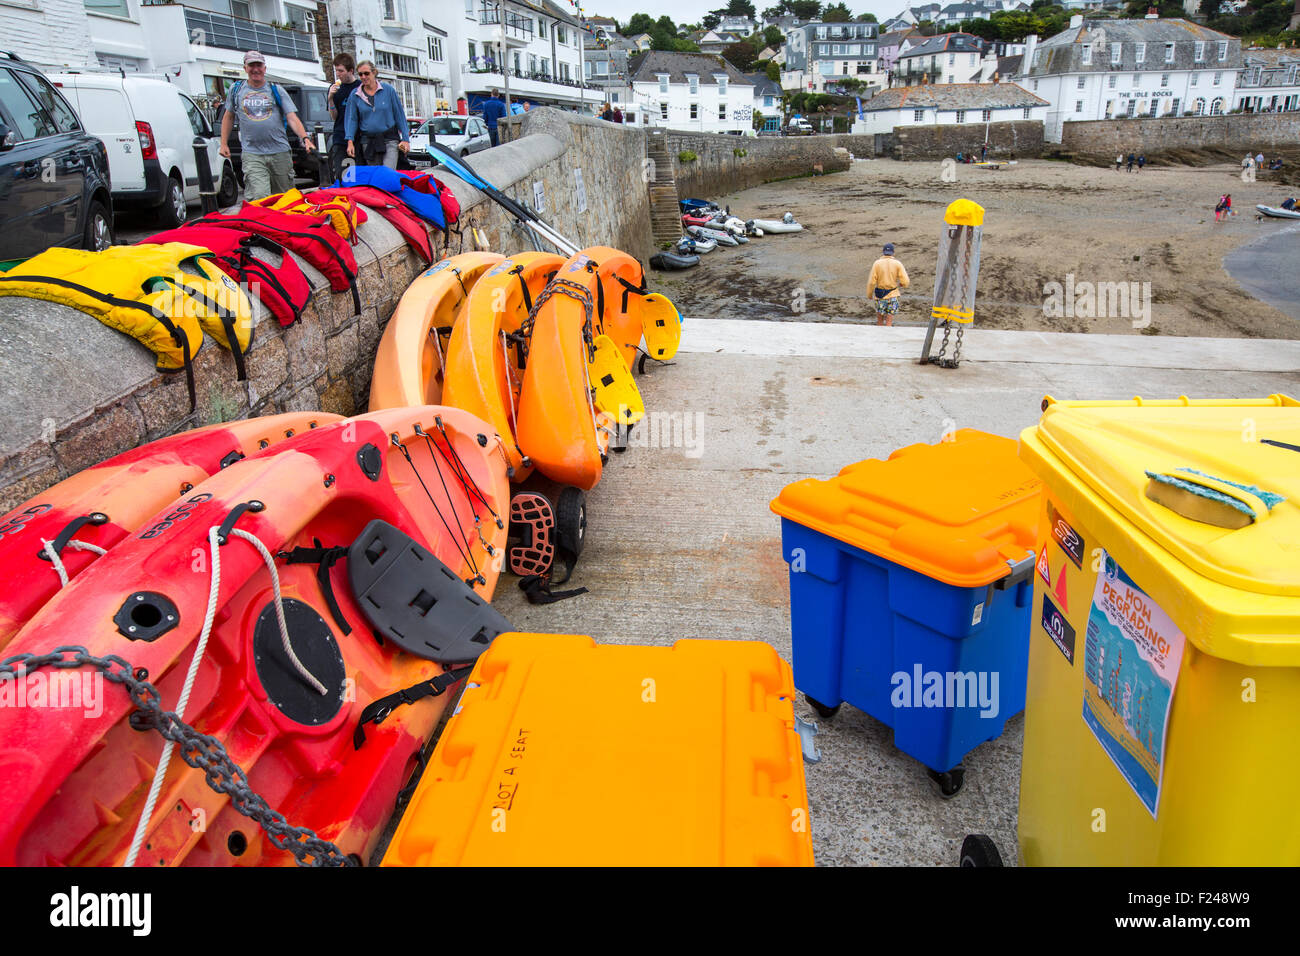 Sit on Kayaks for hire in St Mawes, Cornwall, UK. - Stock Image